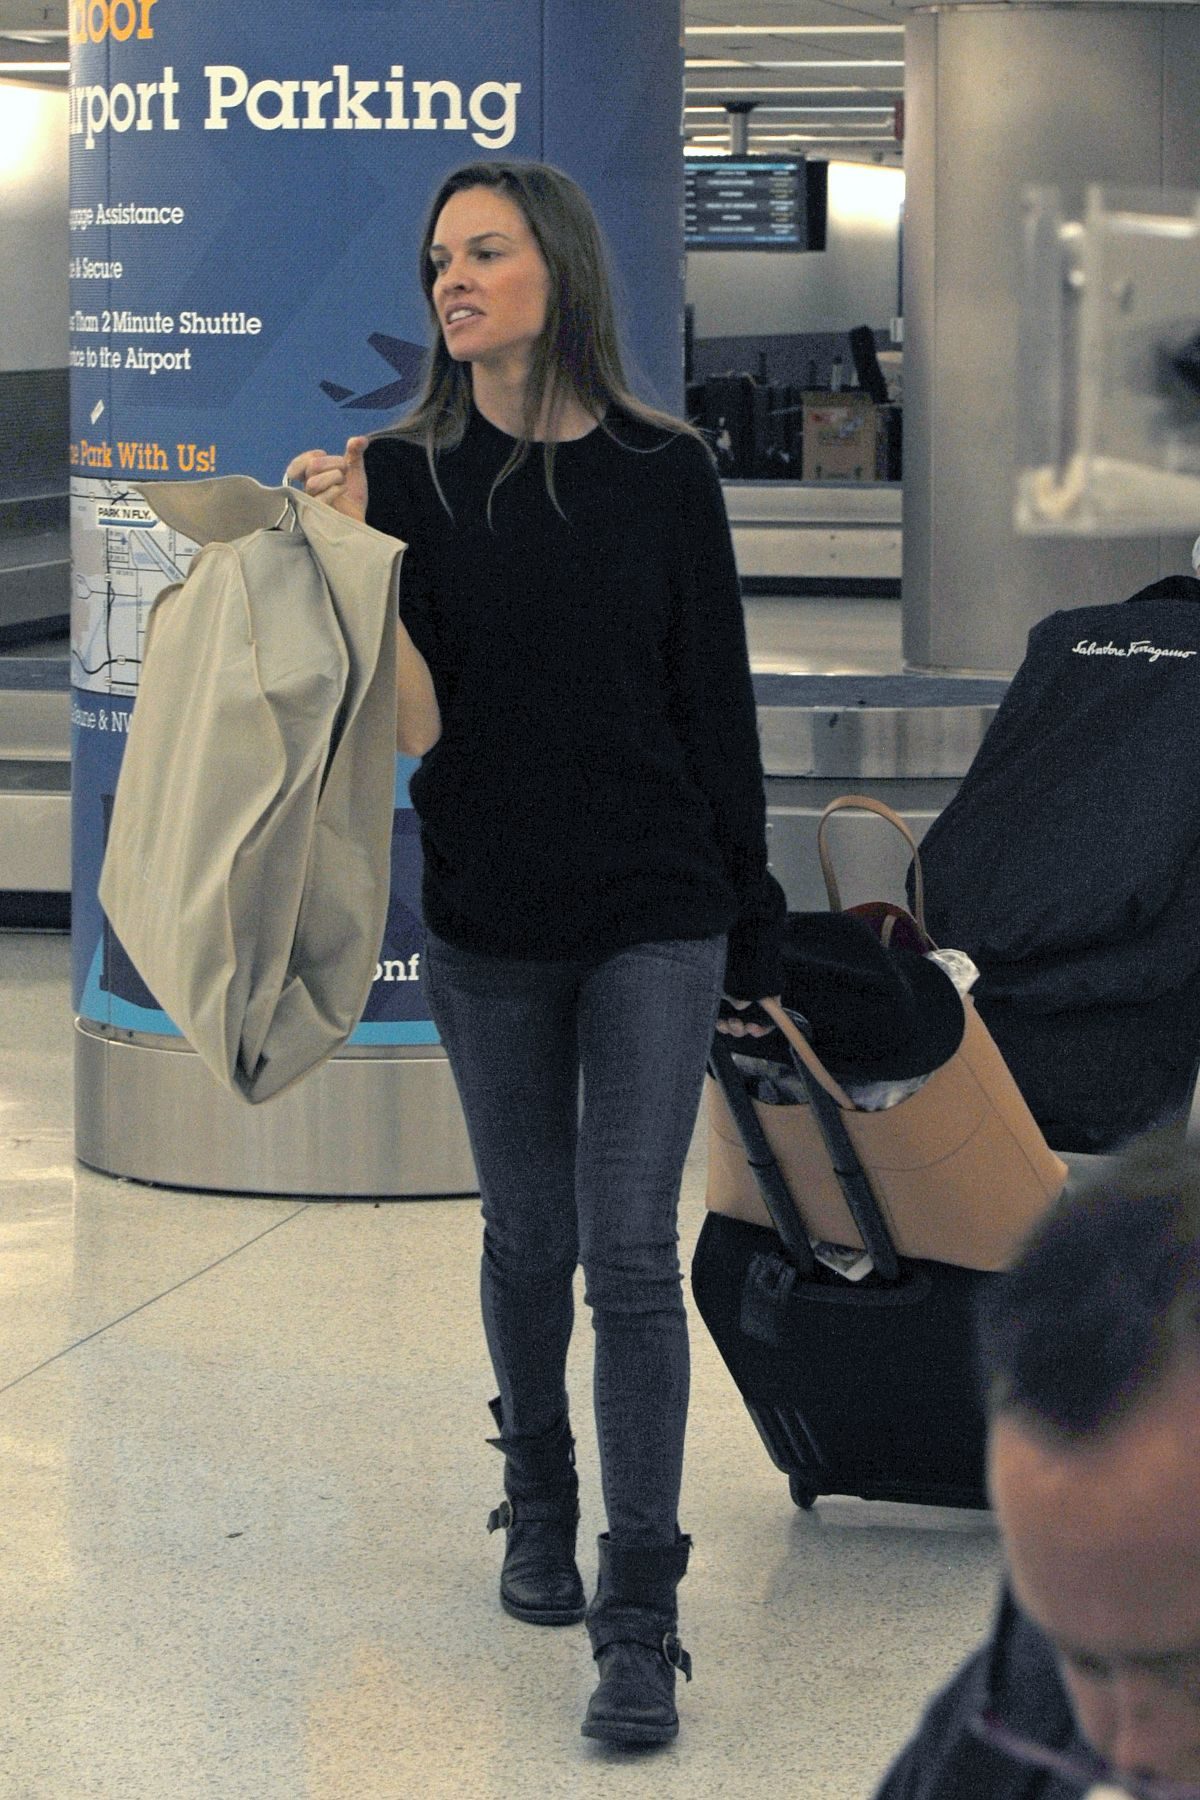 HILARY SWANK at Miami Airport 12/01/2015